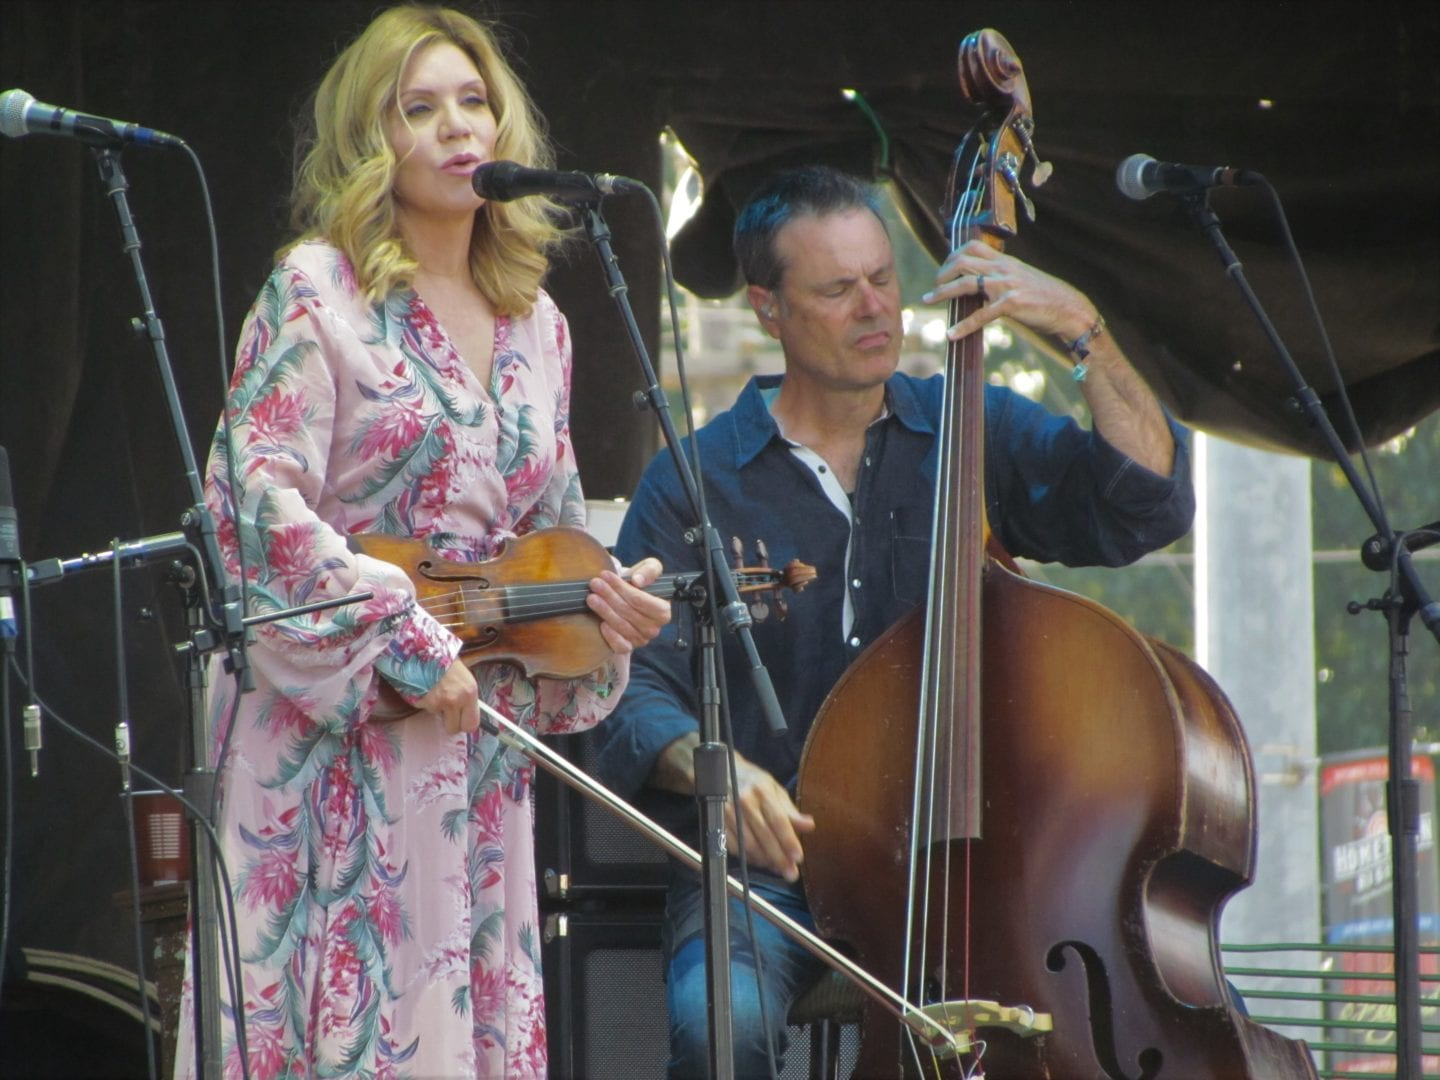 Alison Krauss singing a song